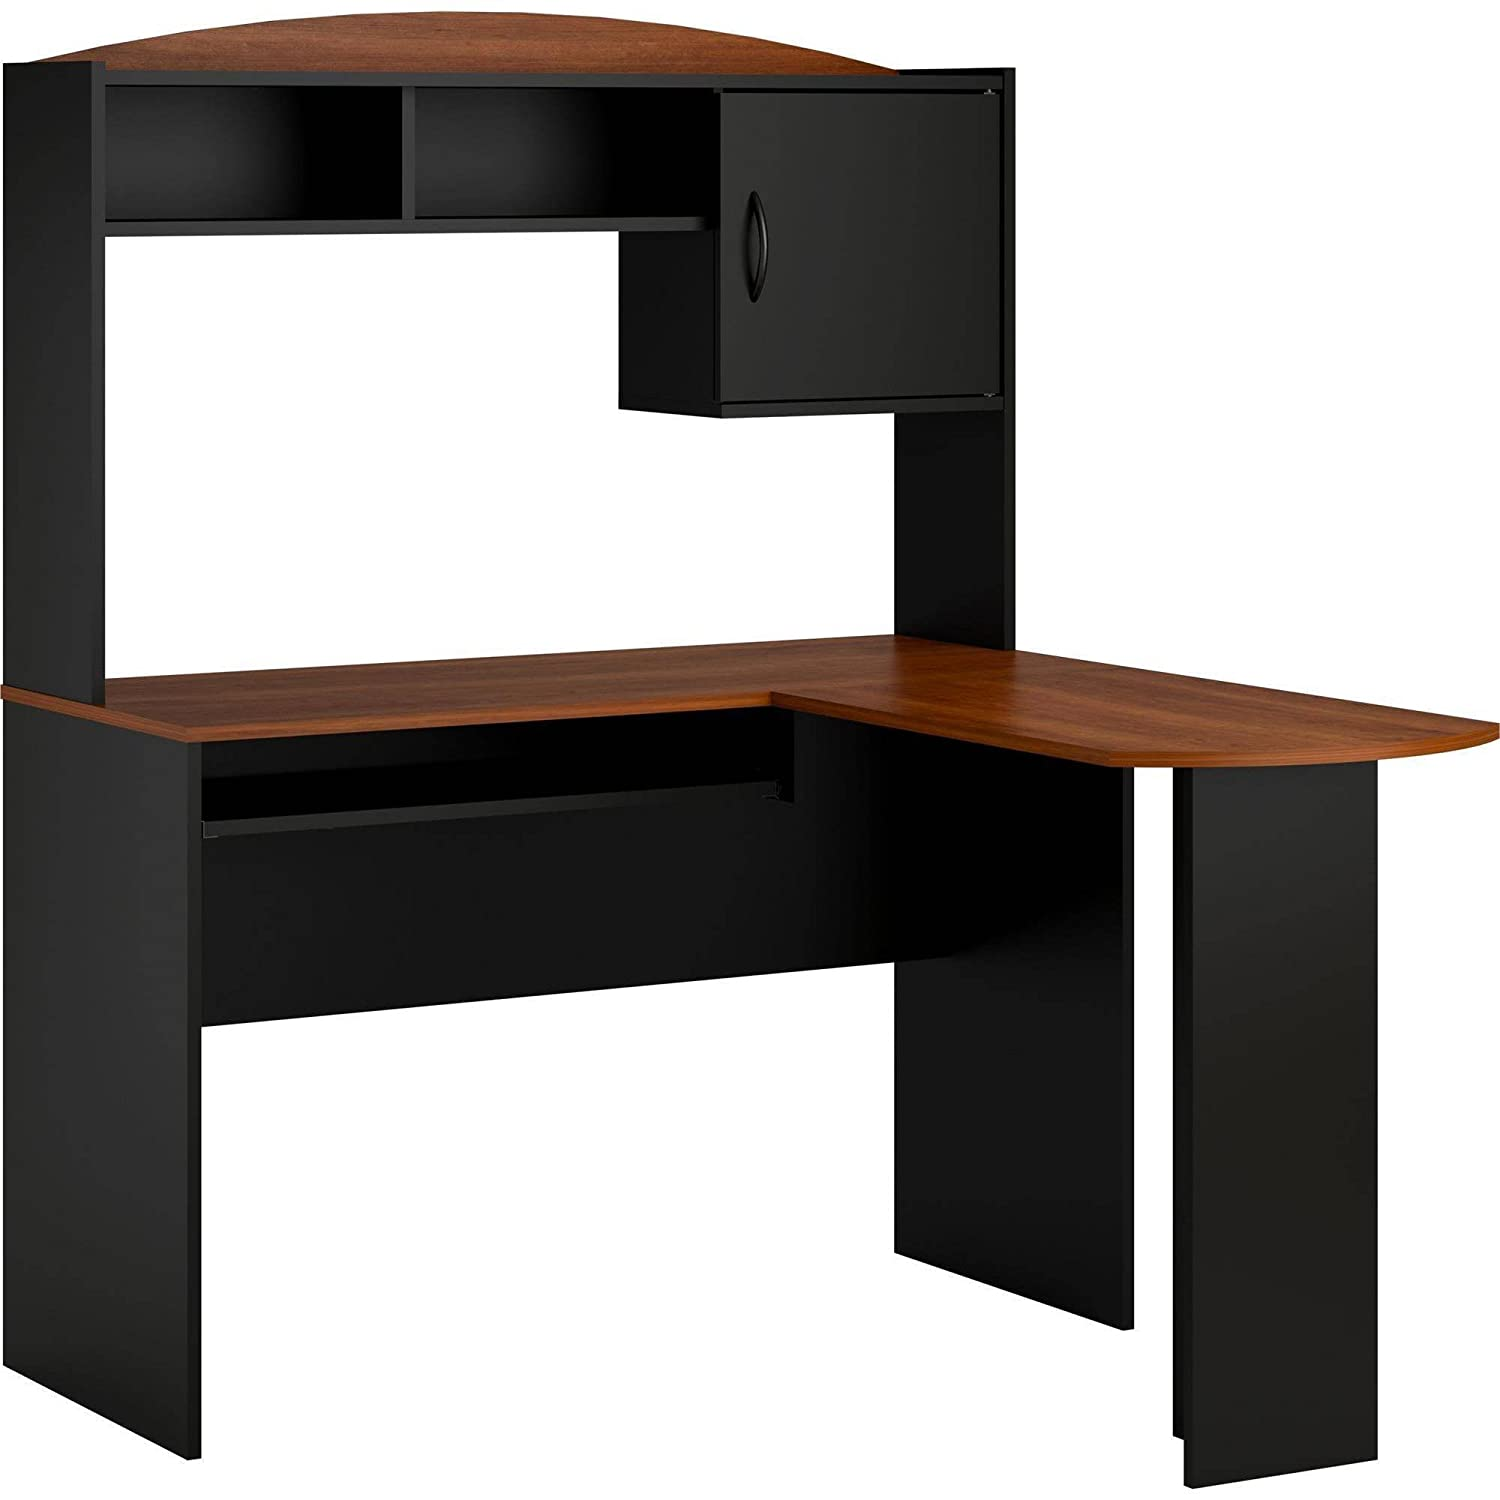 Amazon Home And Office Wooden L Shaped Desk With Hutch A Space Saving Corner Table Furniture Featuring Multiple Storages Also Available In